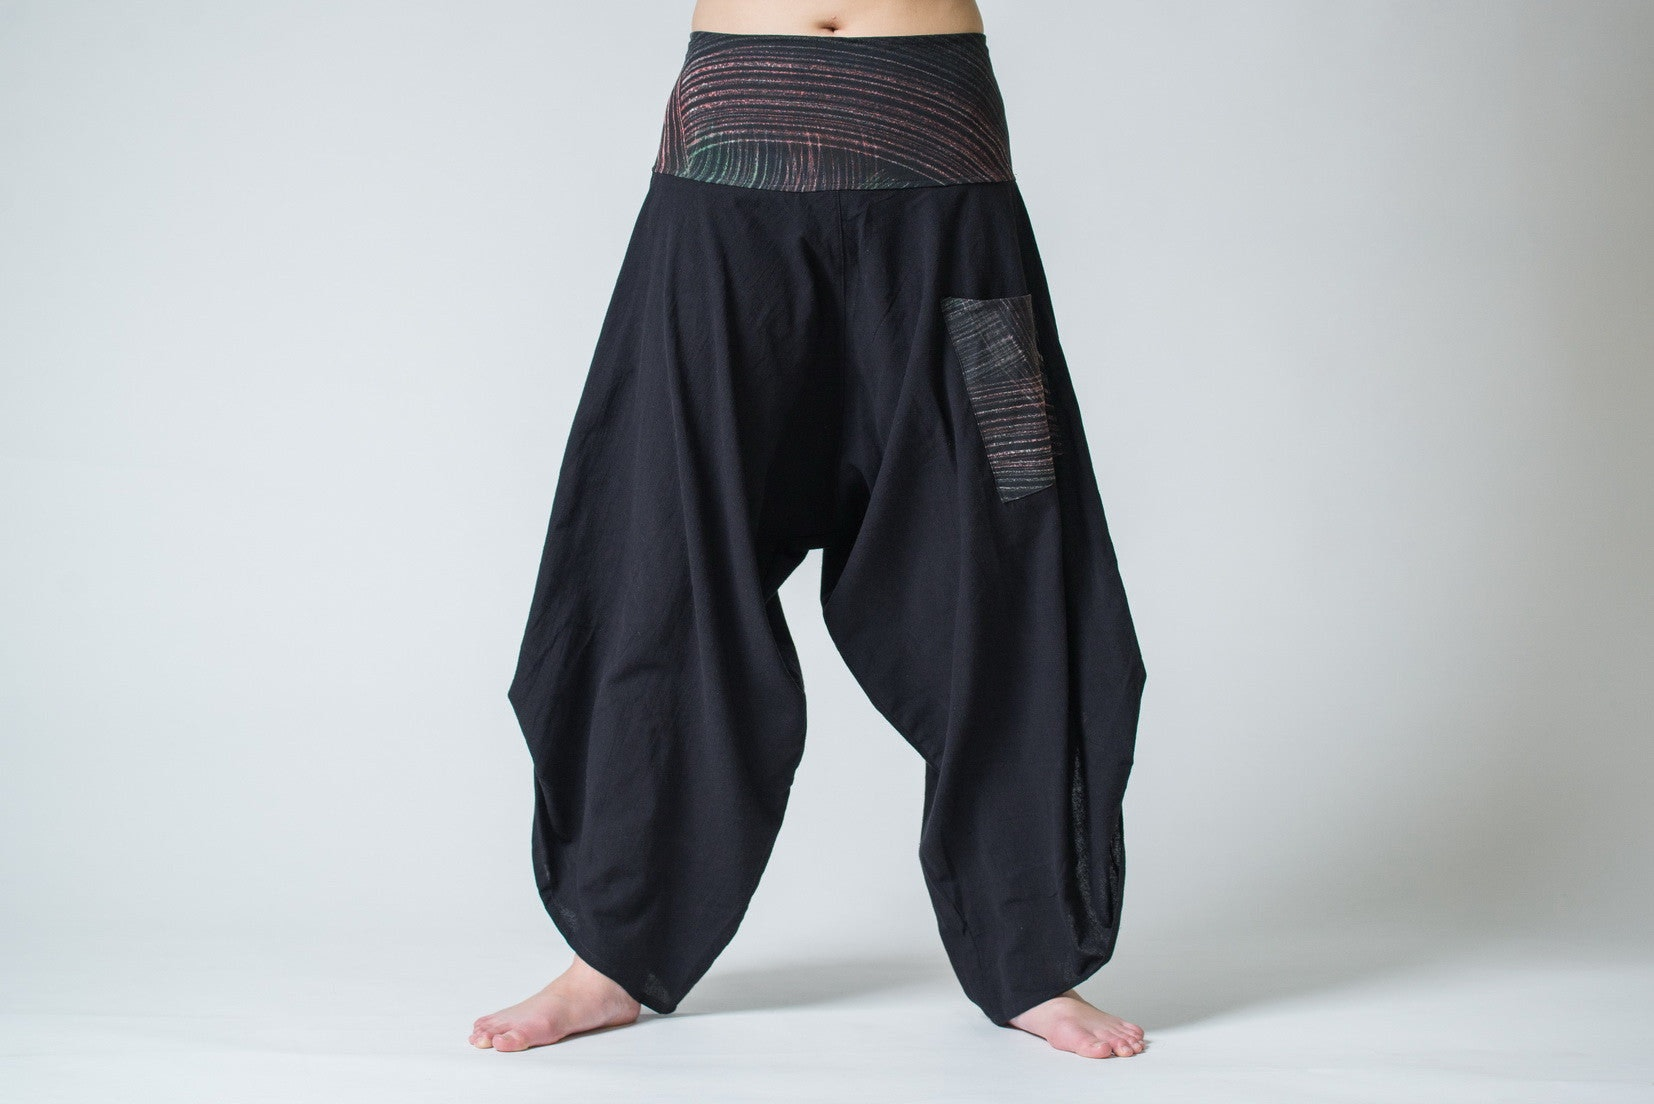 Elegant Womenu0026#39;s Thai Button Up Cotton Pants With Hill Tribe Trim Black U2013 Harem Pants